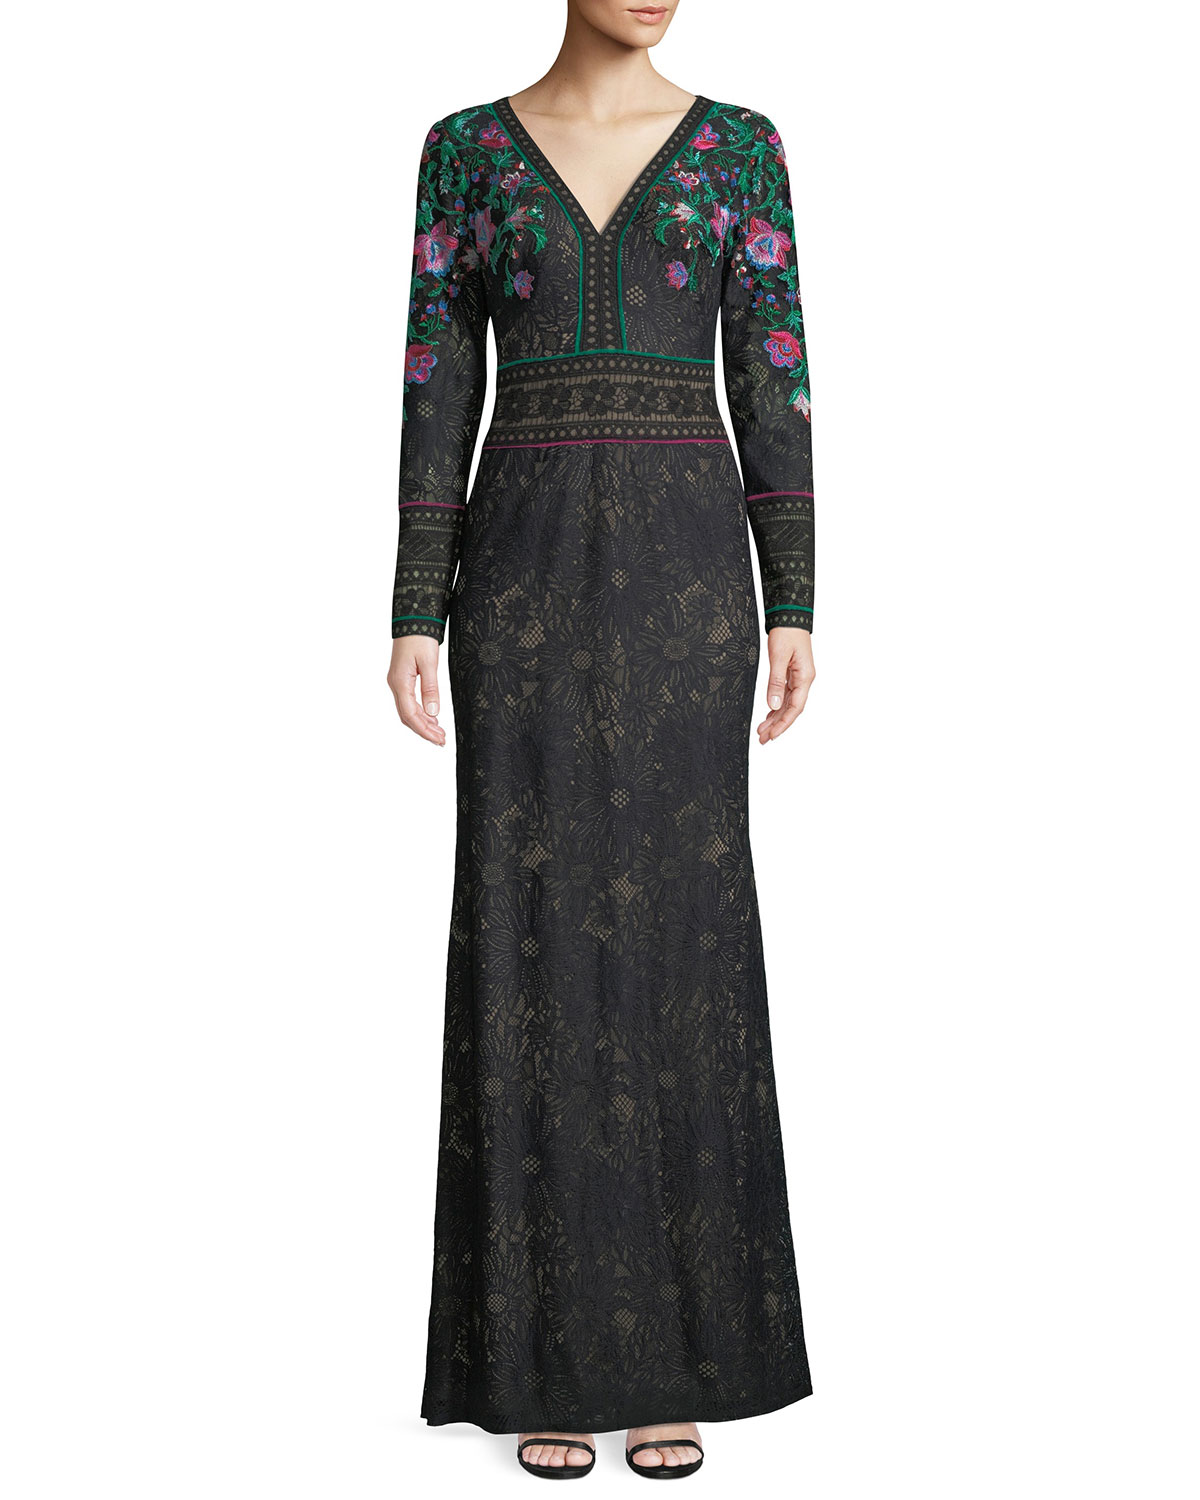 Tadashi Shoji Floral Embroidered Lace Long-Sleeve Gown | Neiman Marcus